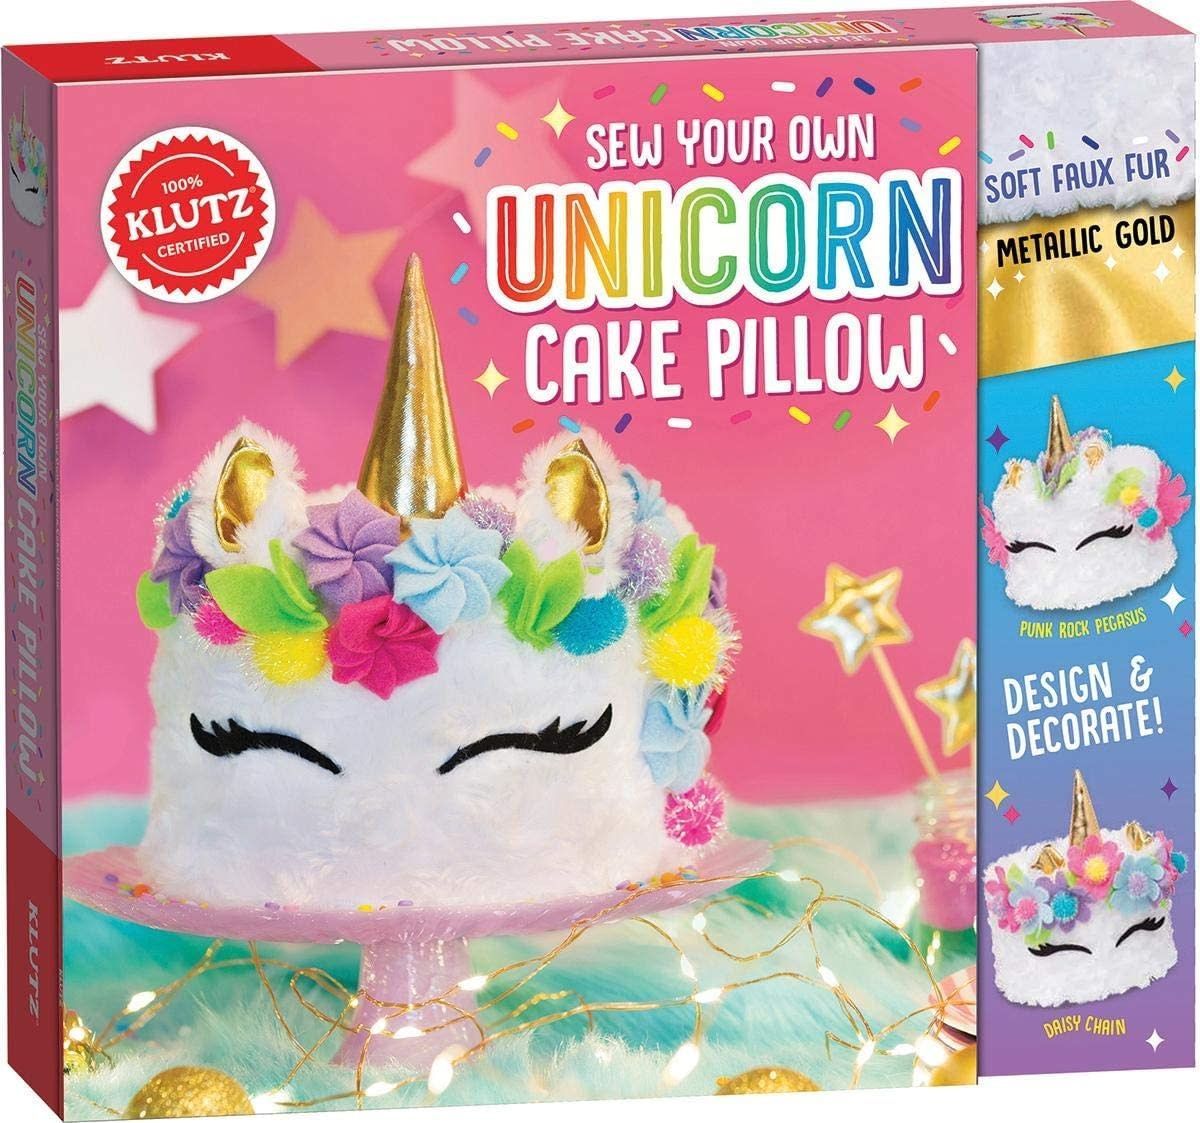 Unicorn Cake Pillow by Klutz-1